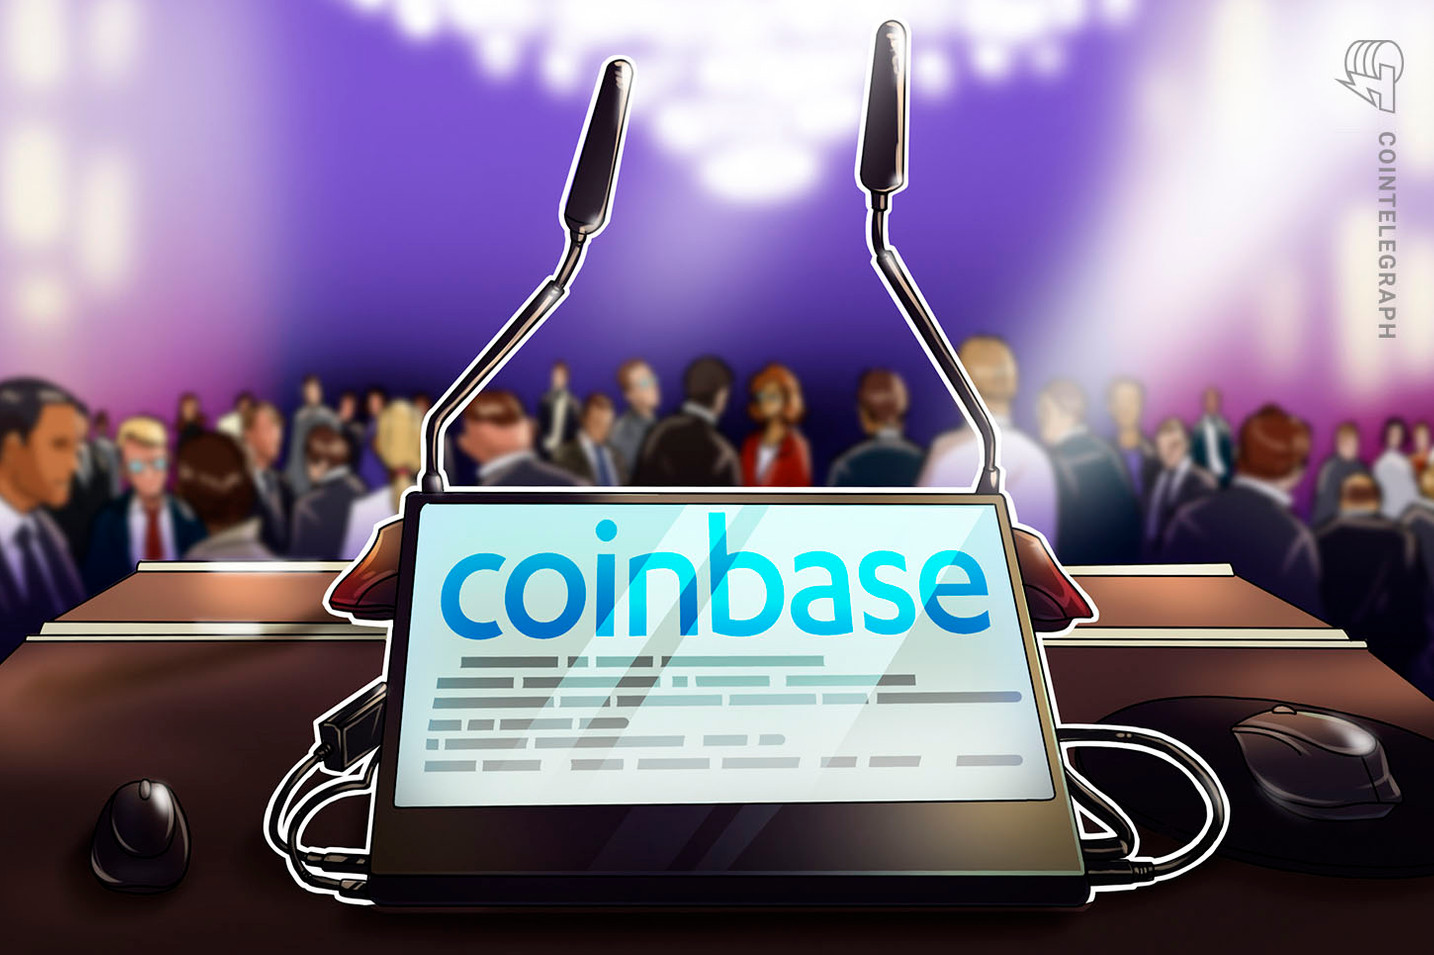 Coinbase's 'Data Plumber' Denies All Allegations